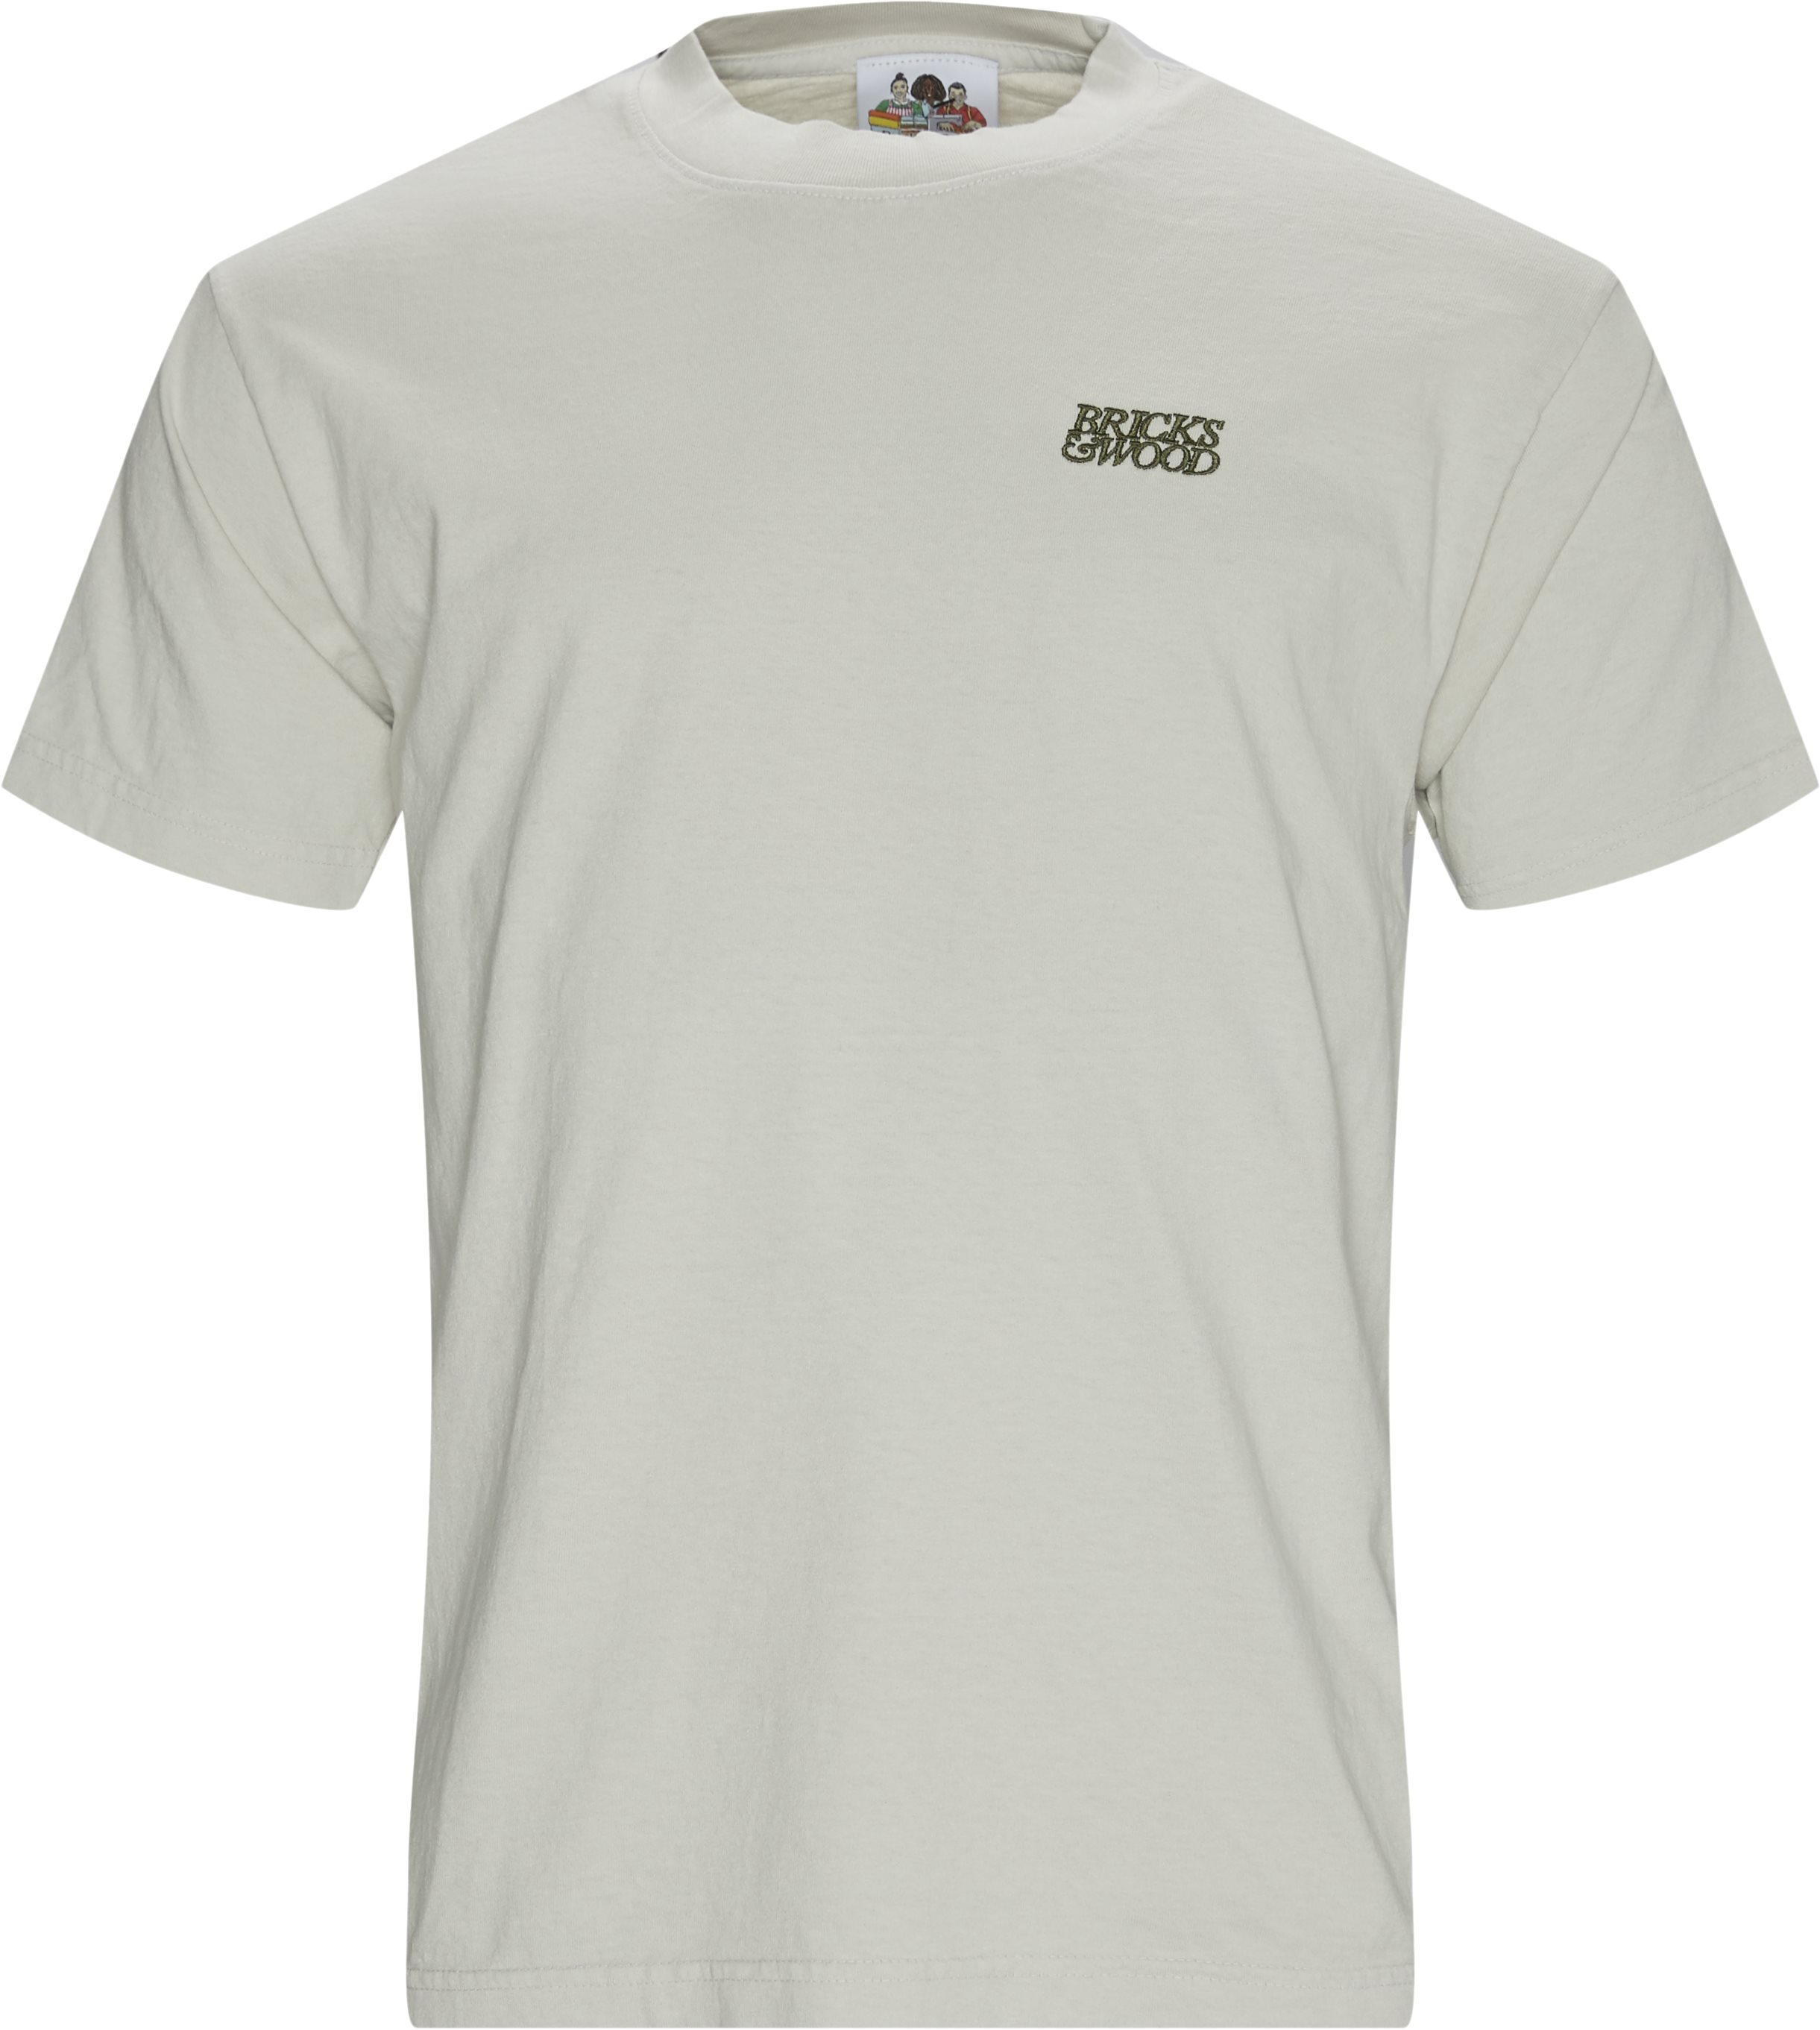 Logo Tee - T-shirts - Regular - Army